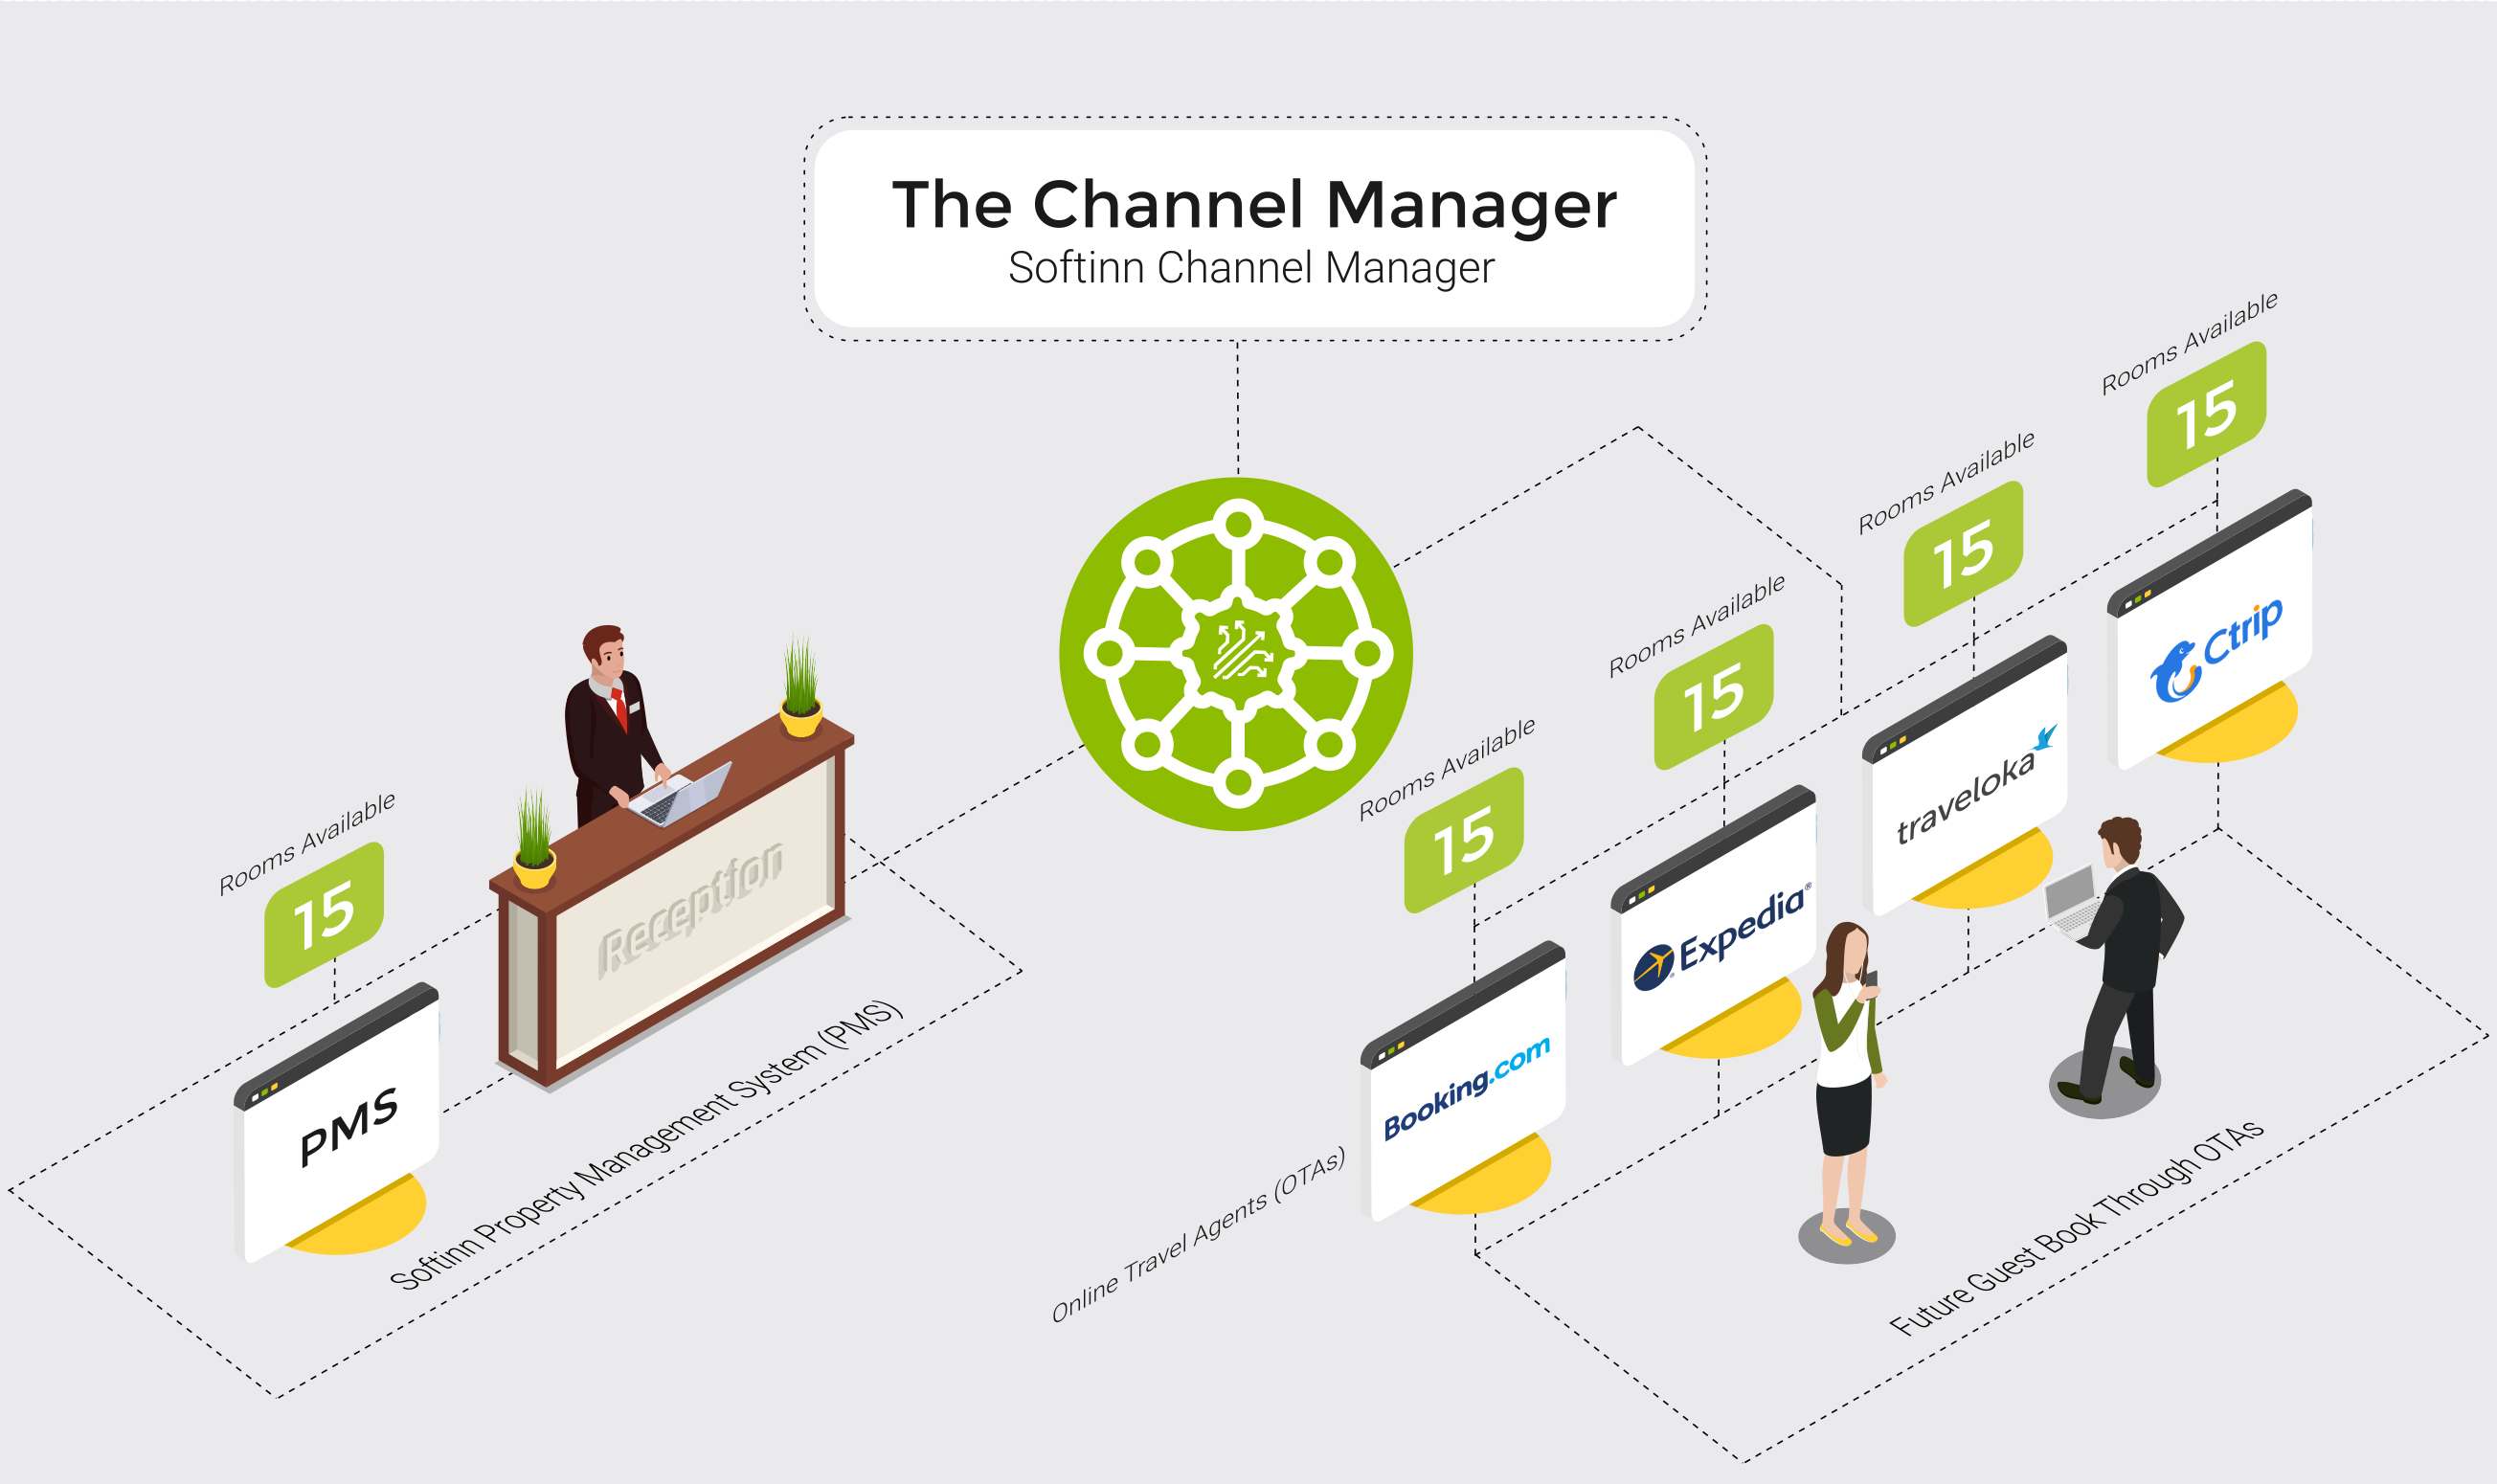 Hotel Channel Manager in MALAYSIA-1